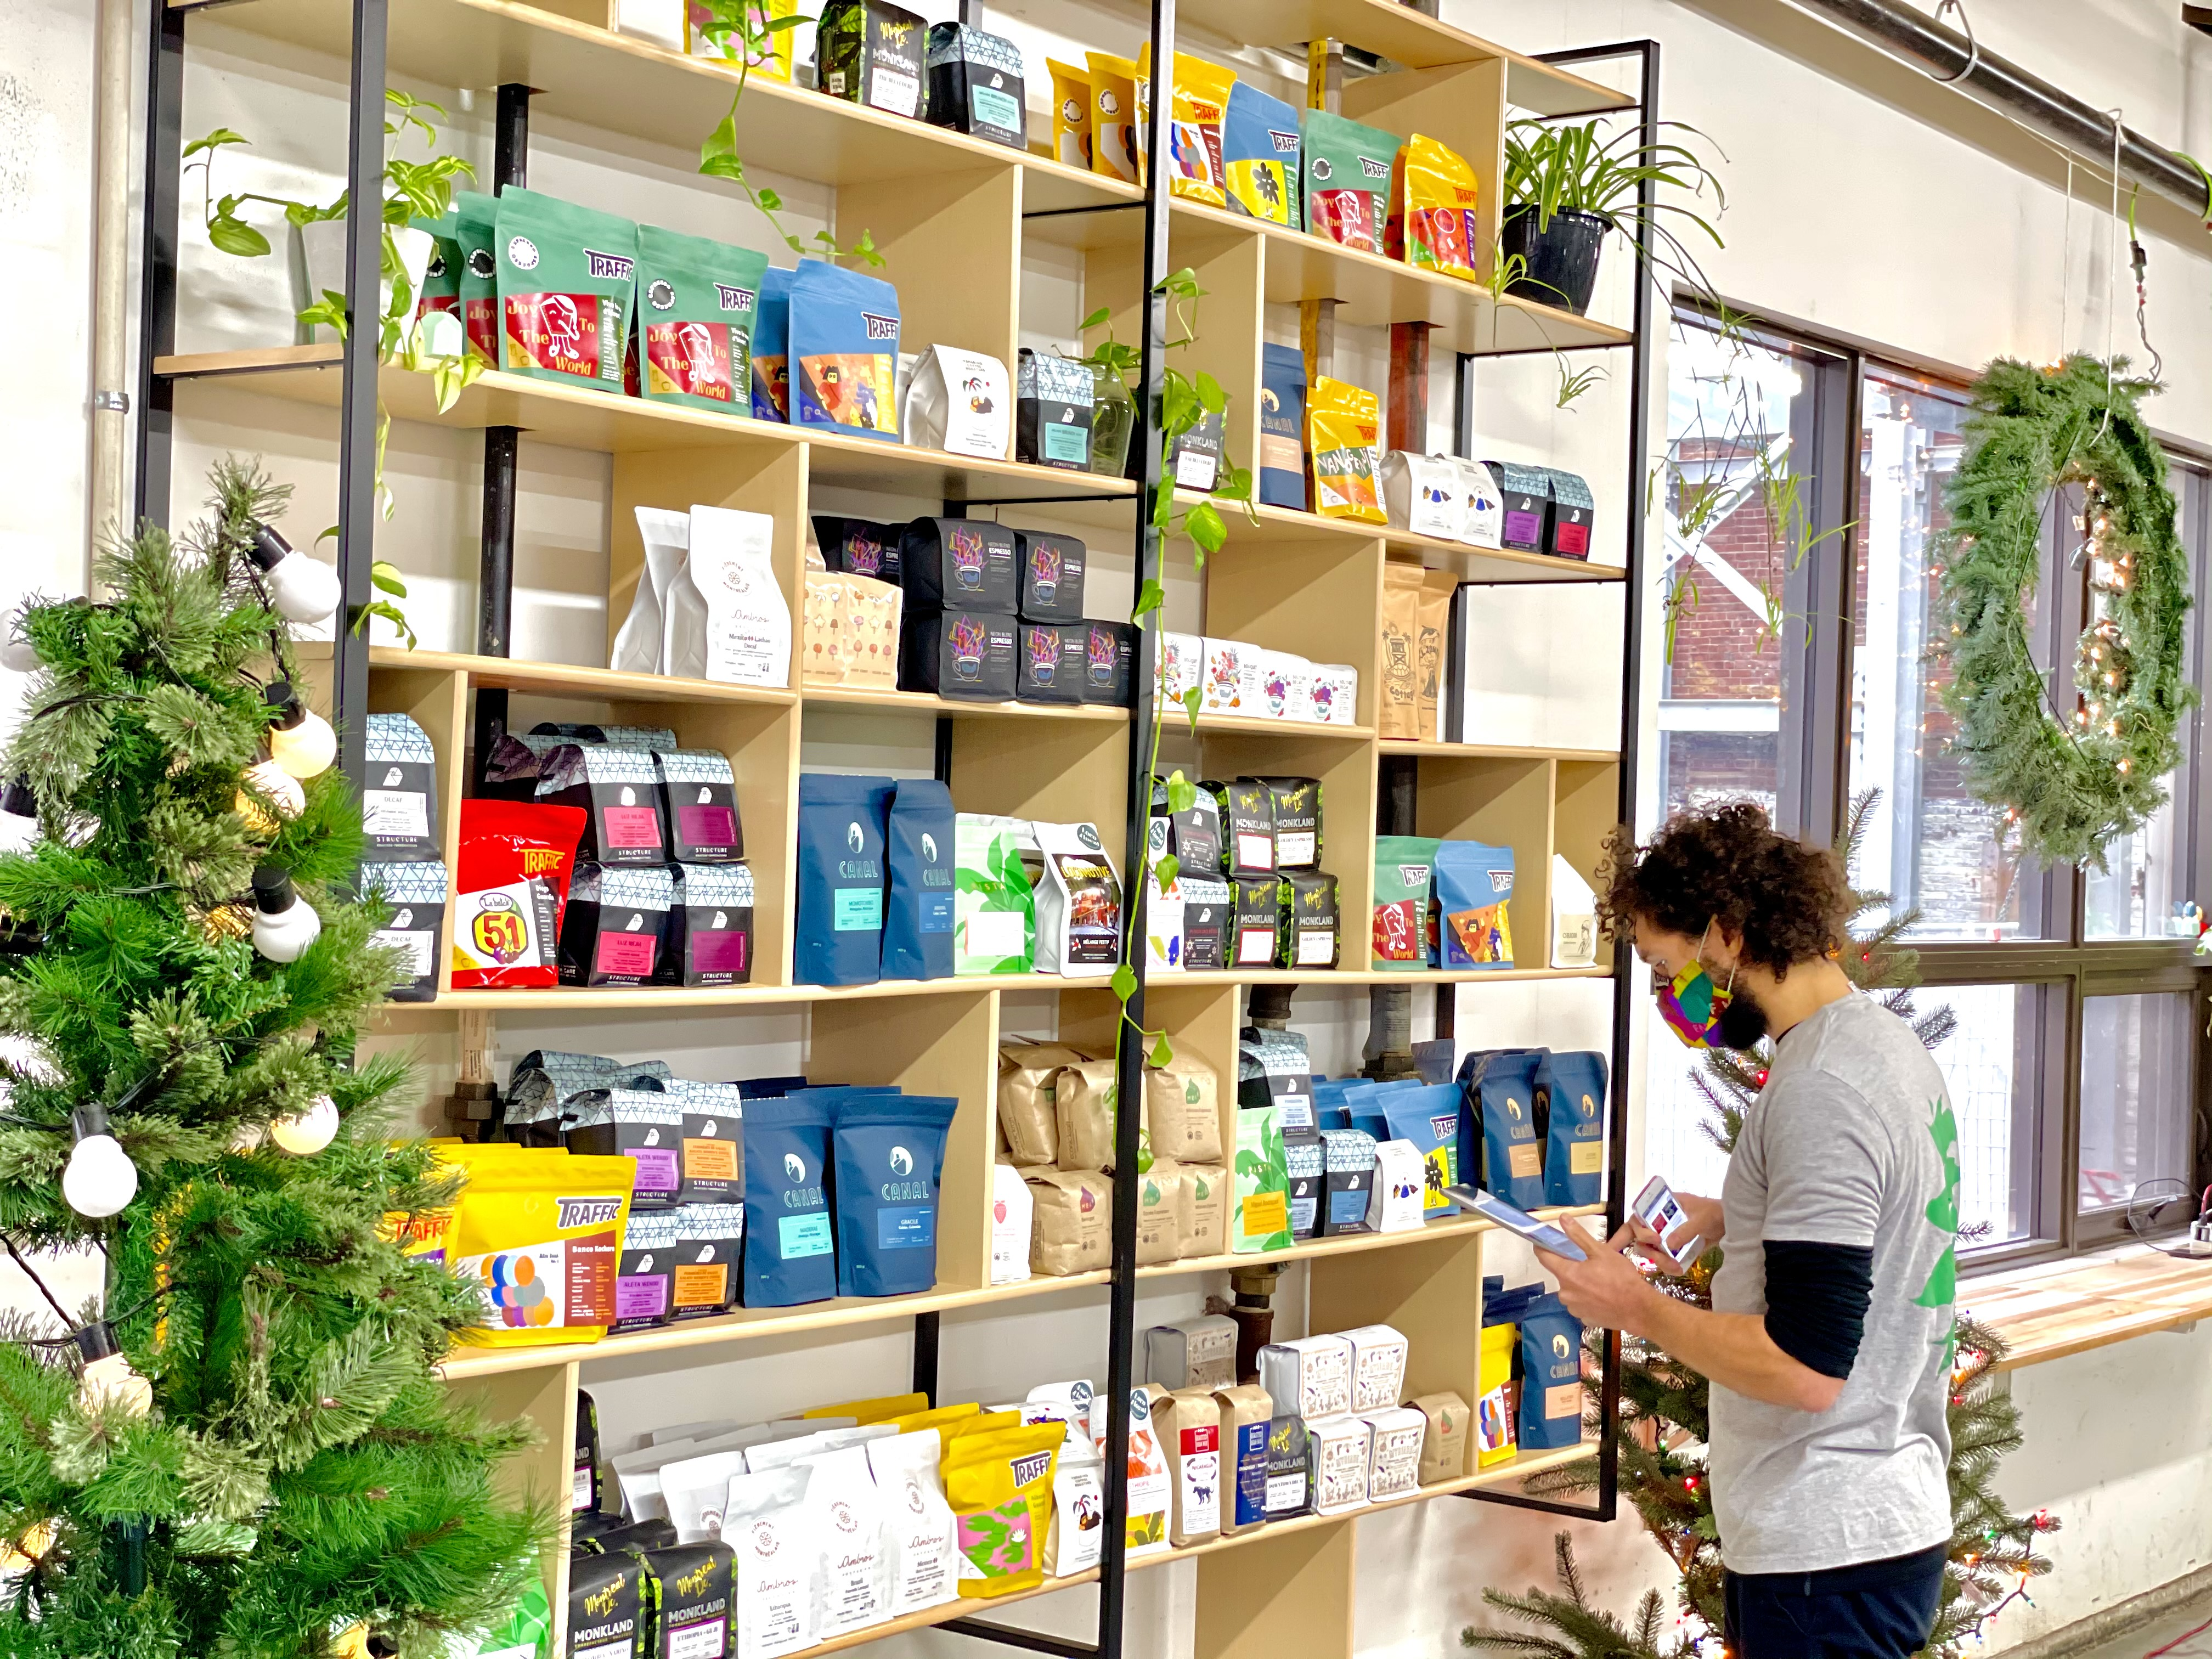 person browsing shelves stocked with coffee